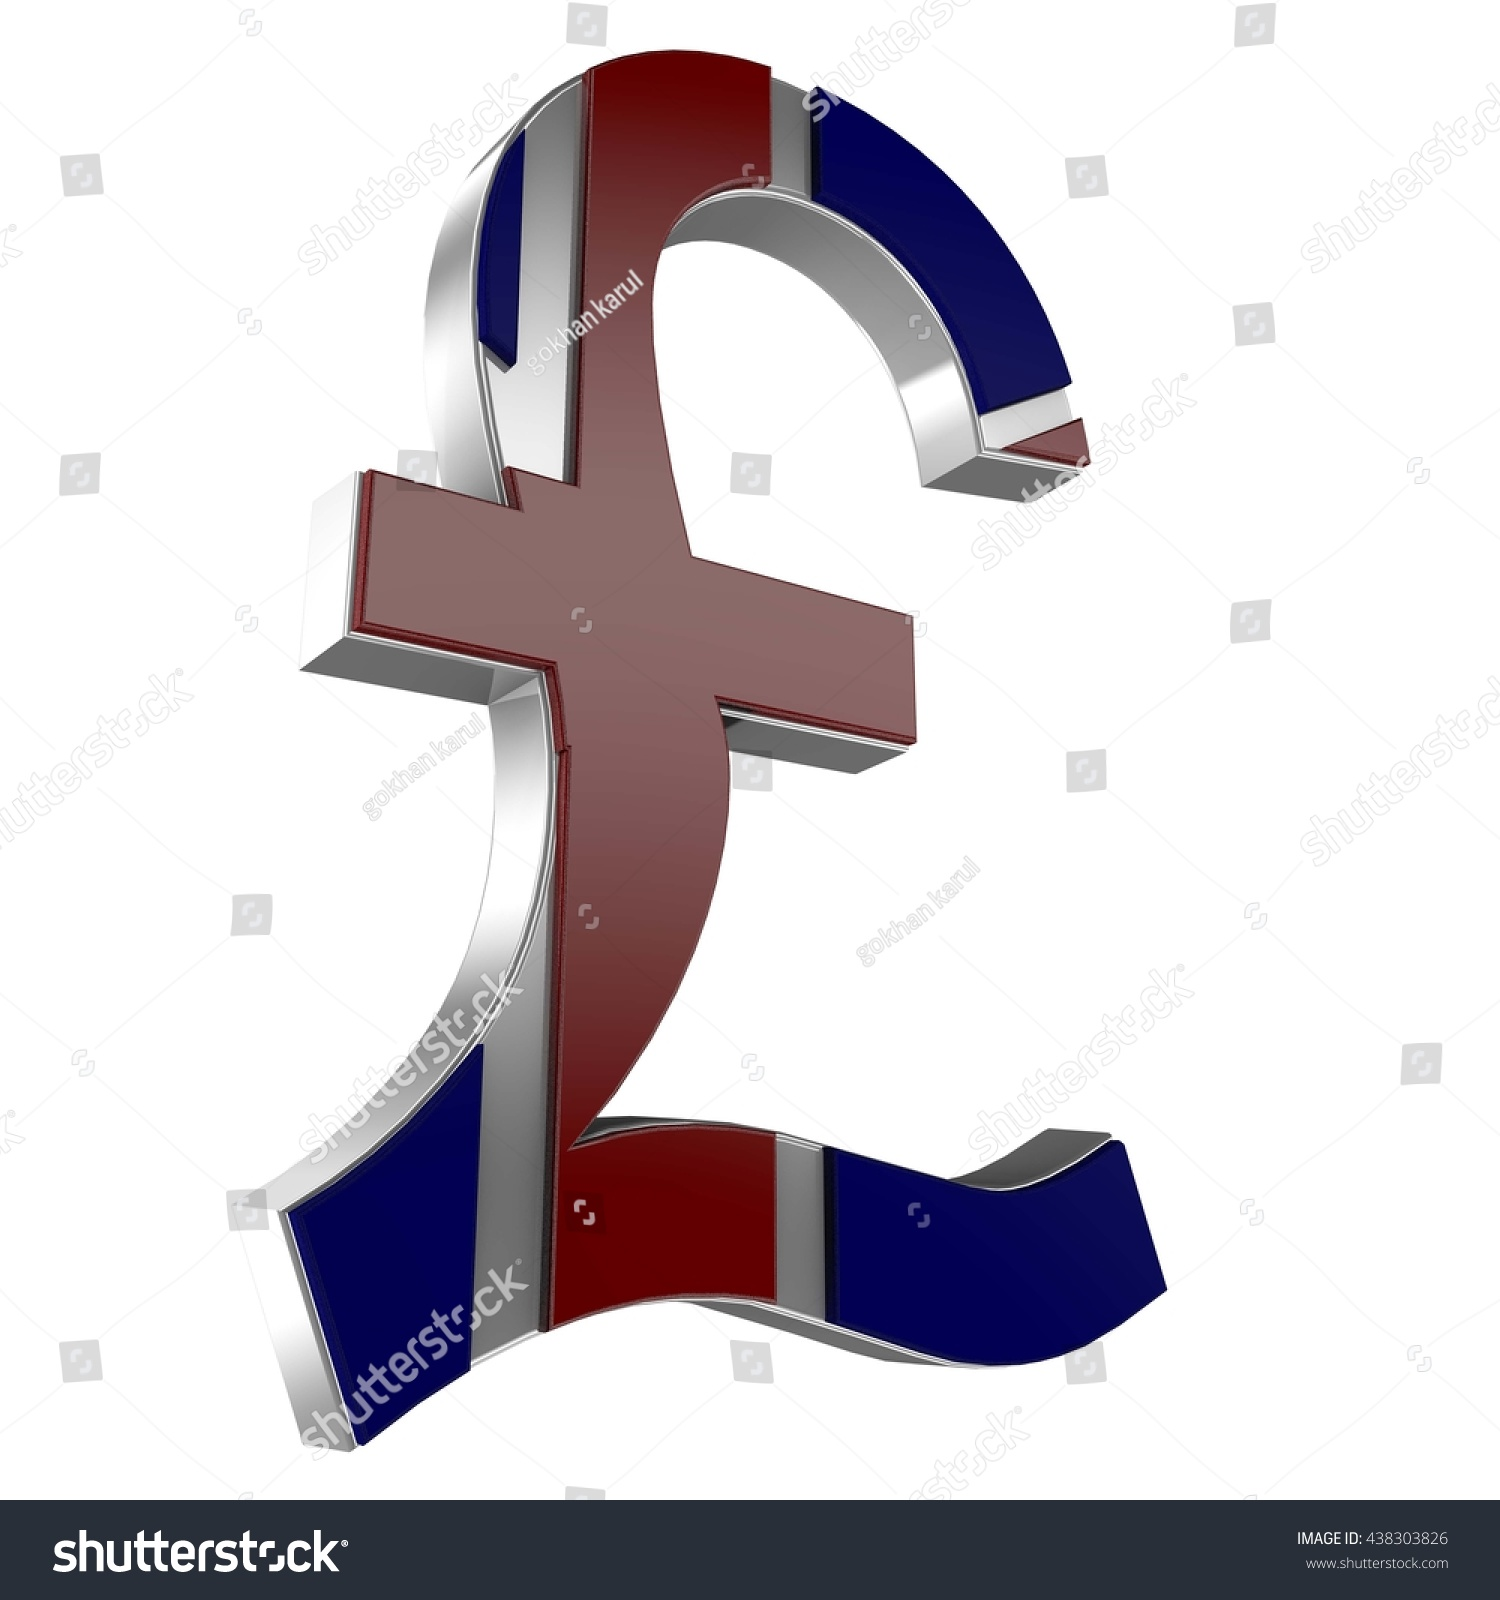 England sterling sign currency symbol 3d stock illustration england and sterling sign currency symbol 3d illustration designs biocorpaavc Gallery